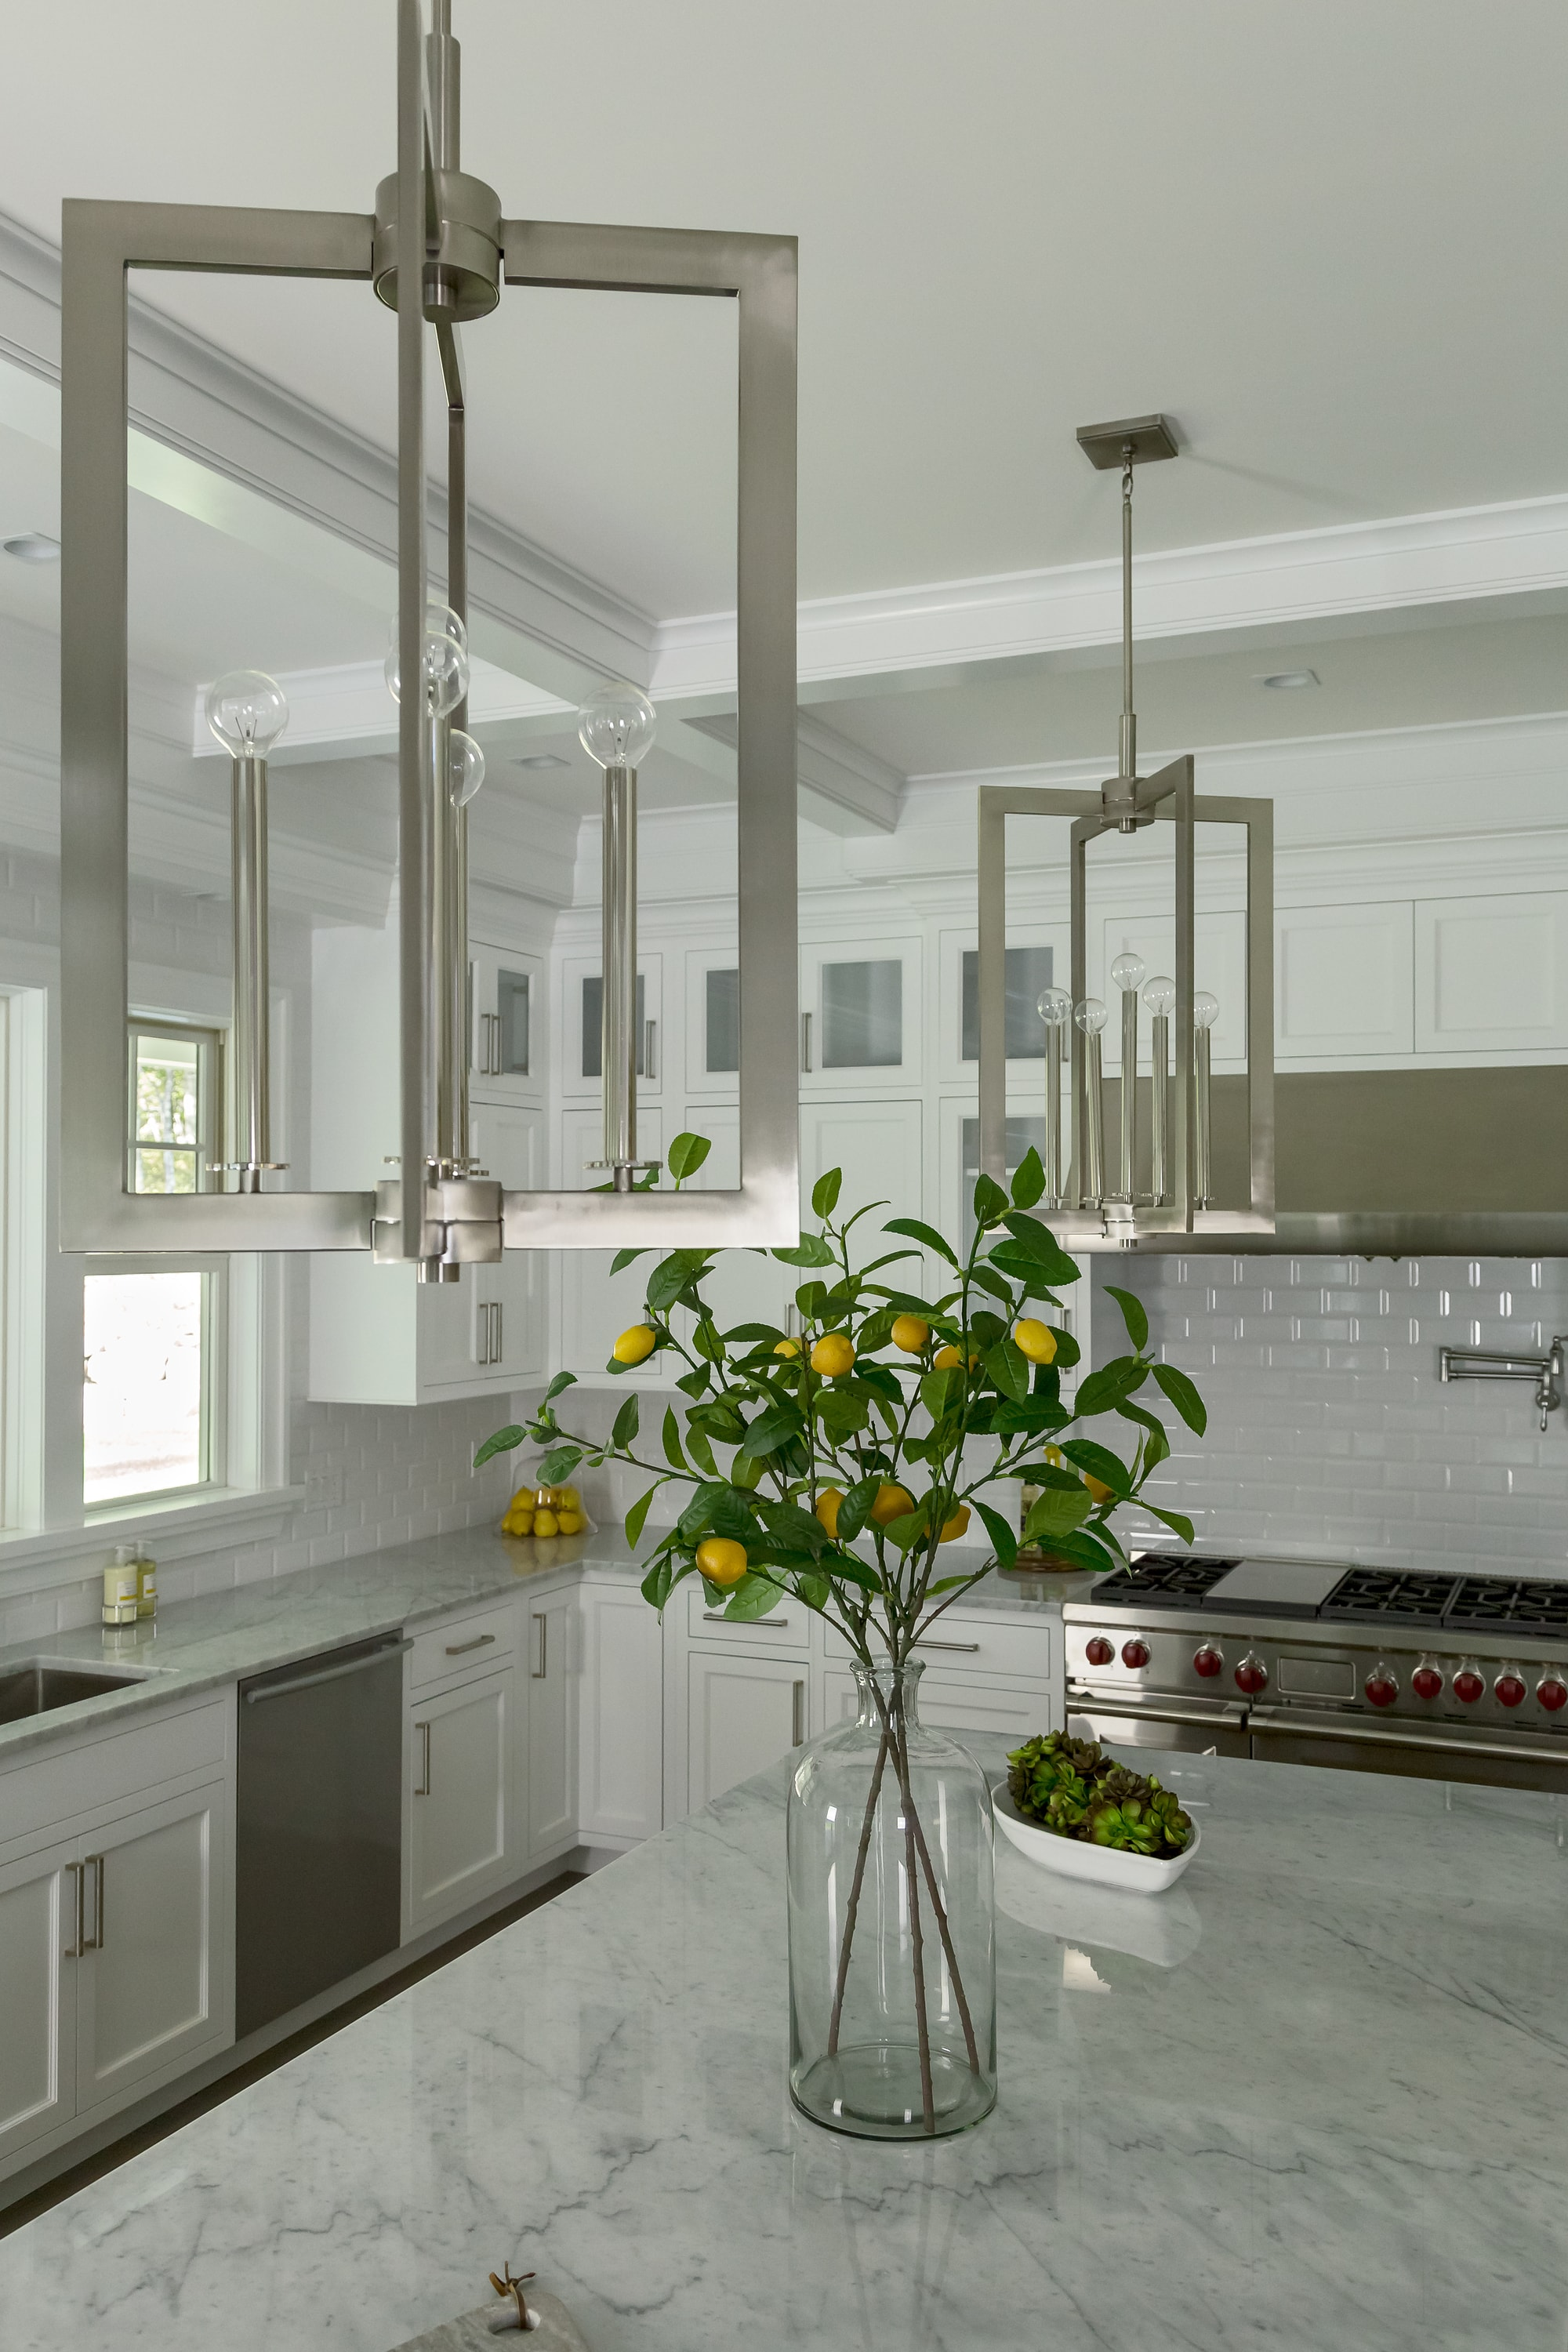 Copy of Transitional style kitchen with two modern light fixtures